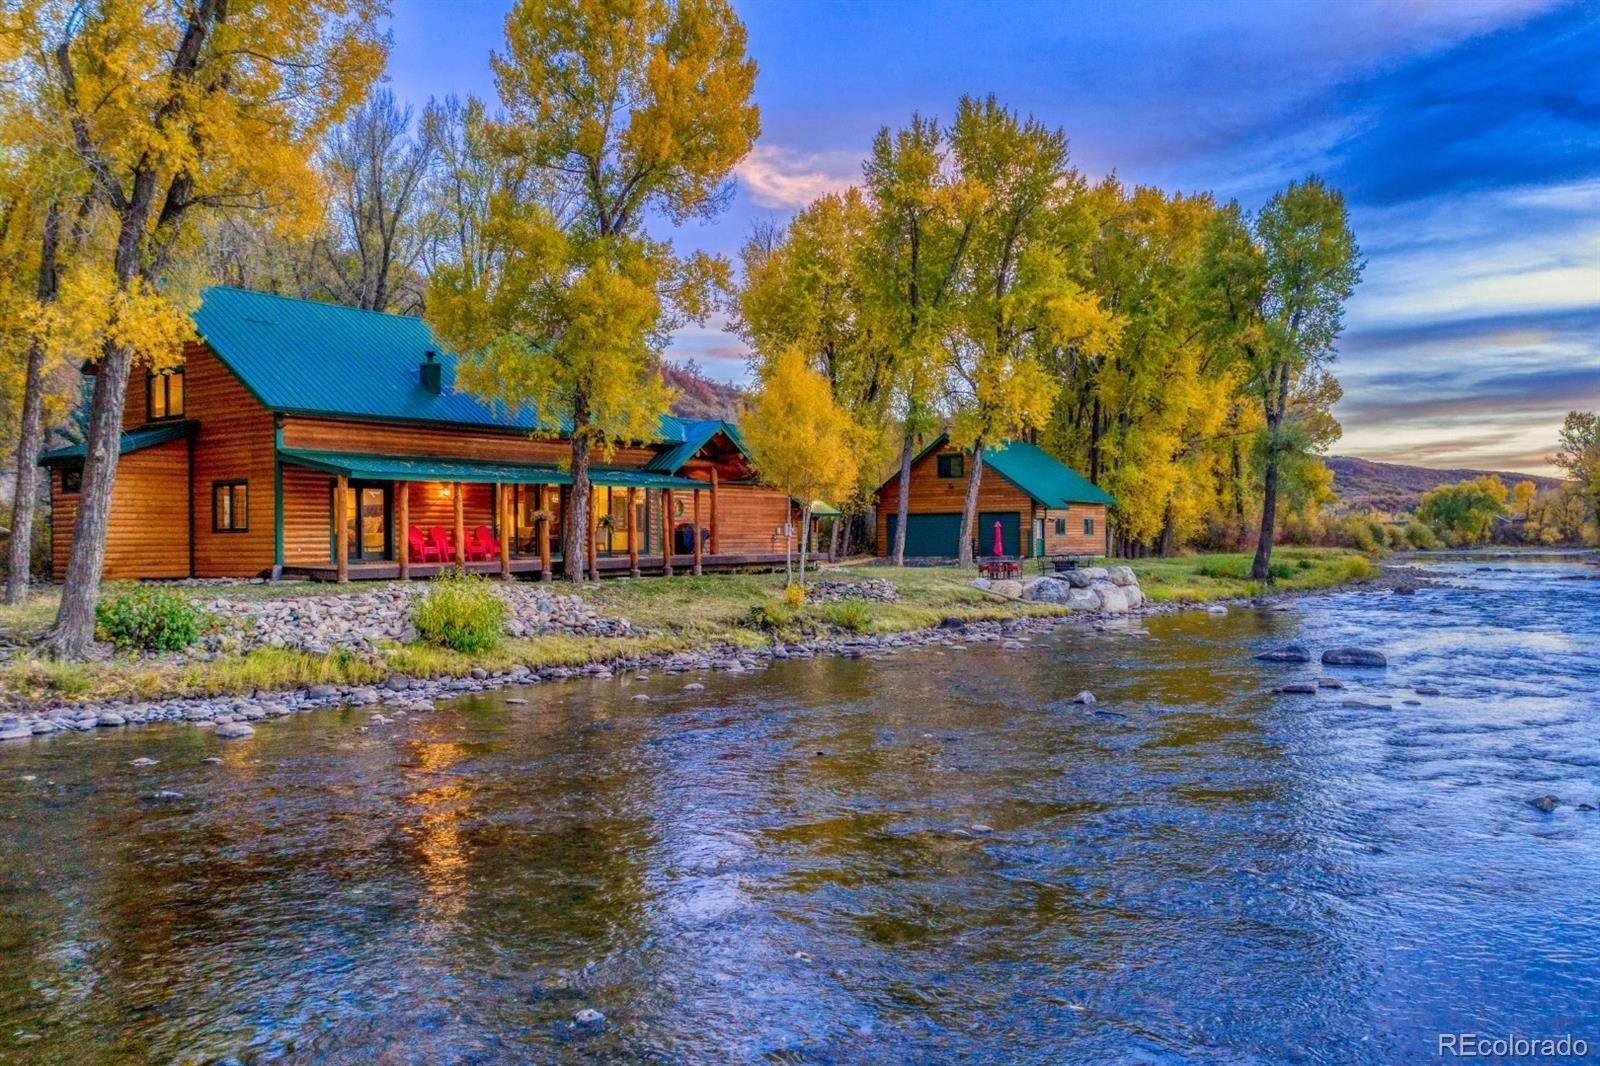 Single Family Homes for Sale at 43605 County Road 129 Steamboat Springs, Colorado 80487 United States